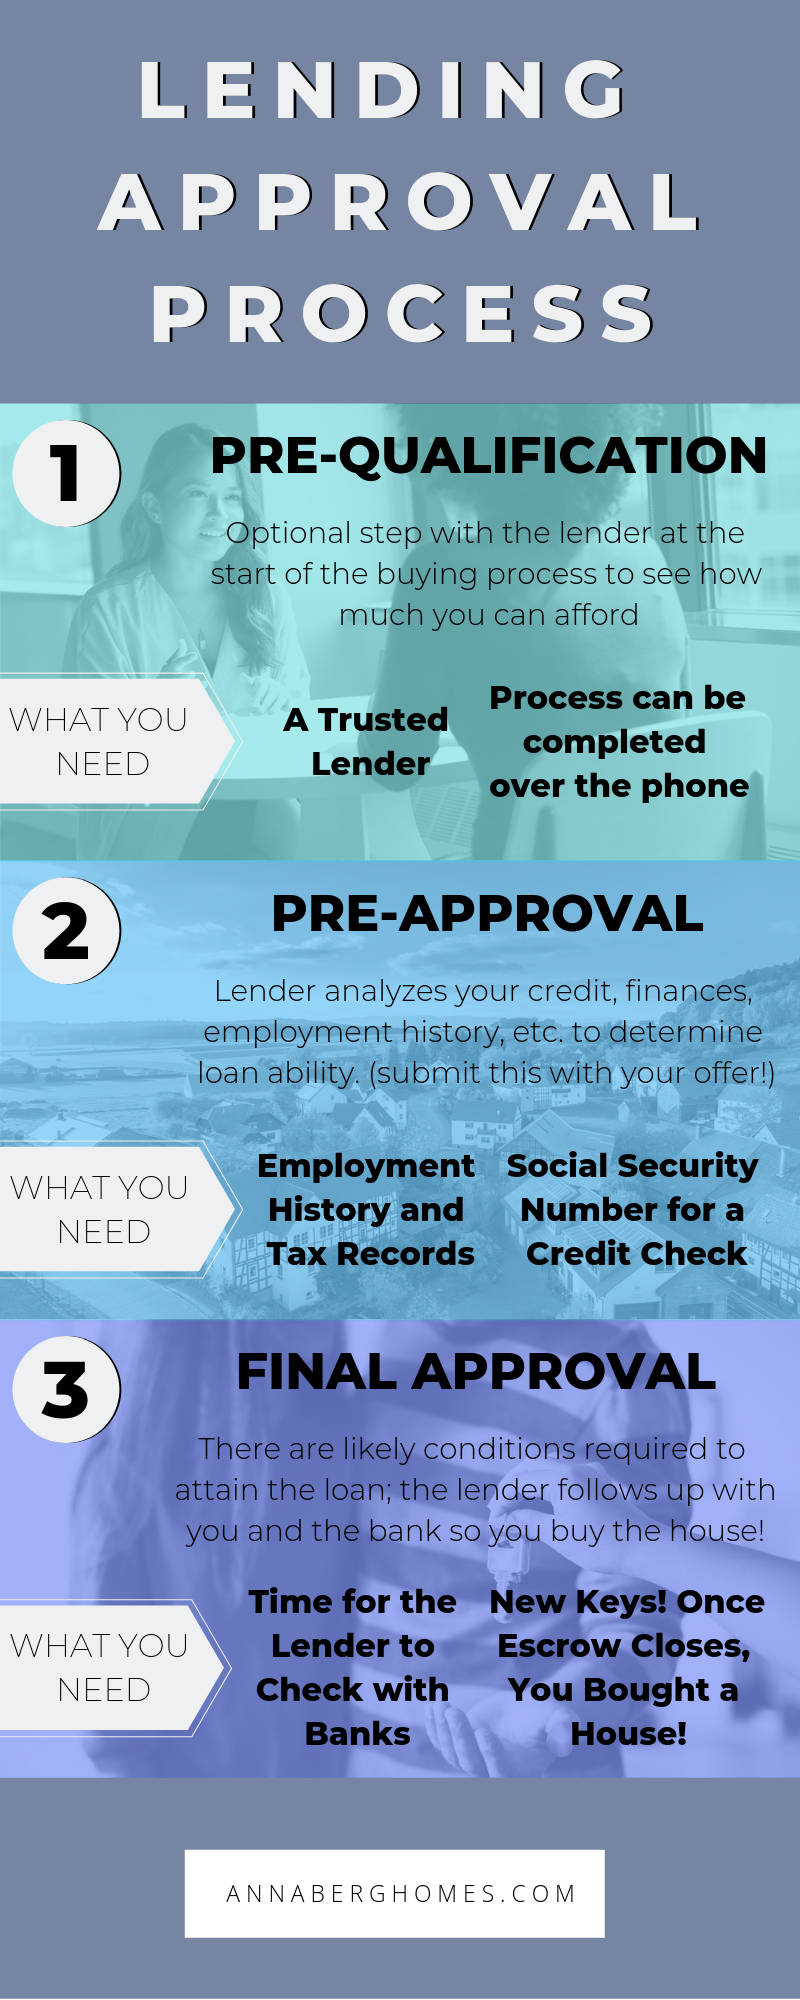 Mortgage Process 8 Easy Steps Bizarre Lists Mortgage Process Mortgage Processor Mortgage Humor